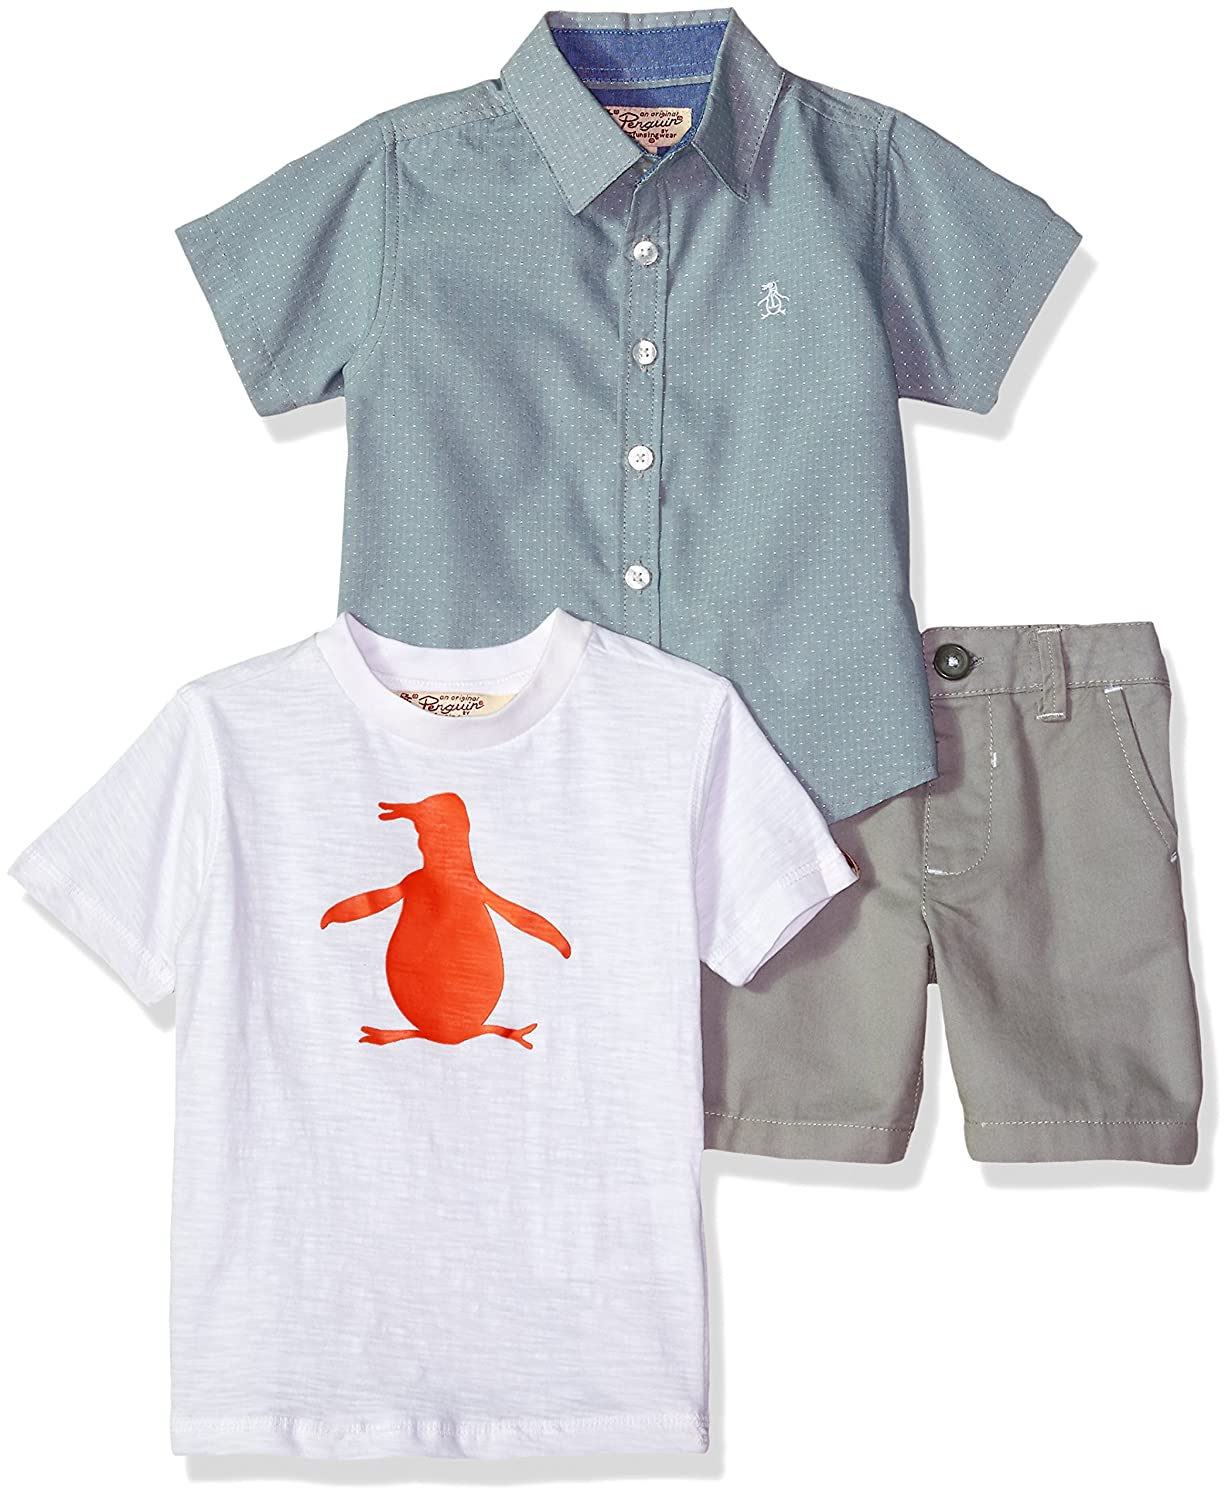 Original Penguin Boys' Sport, Knit Shirt and Short Set